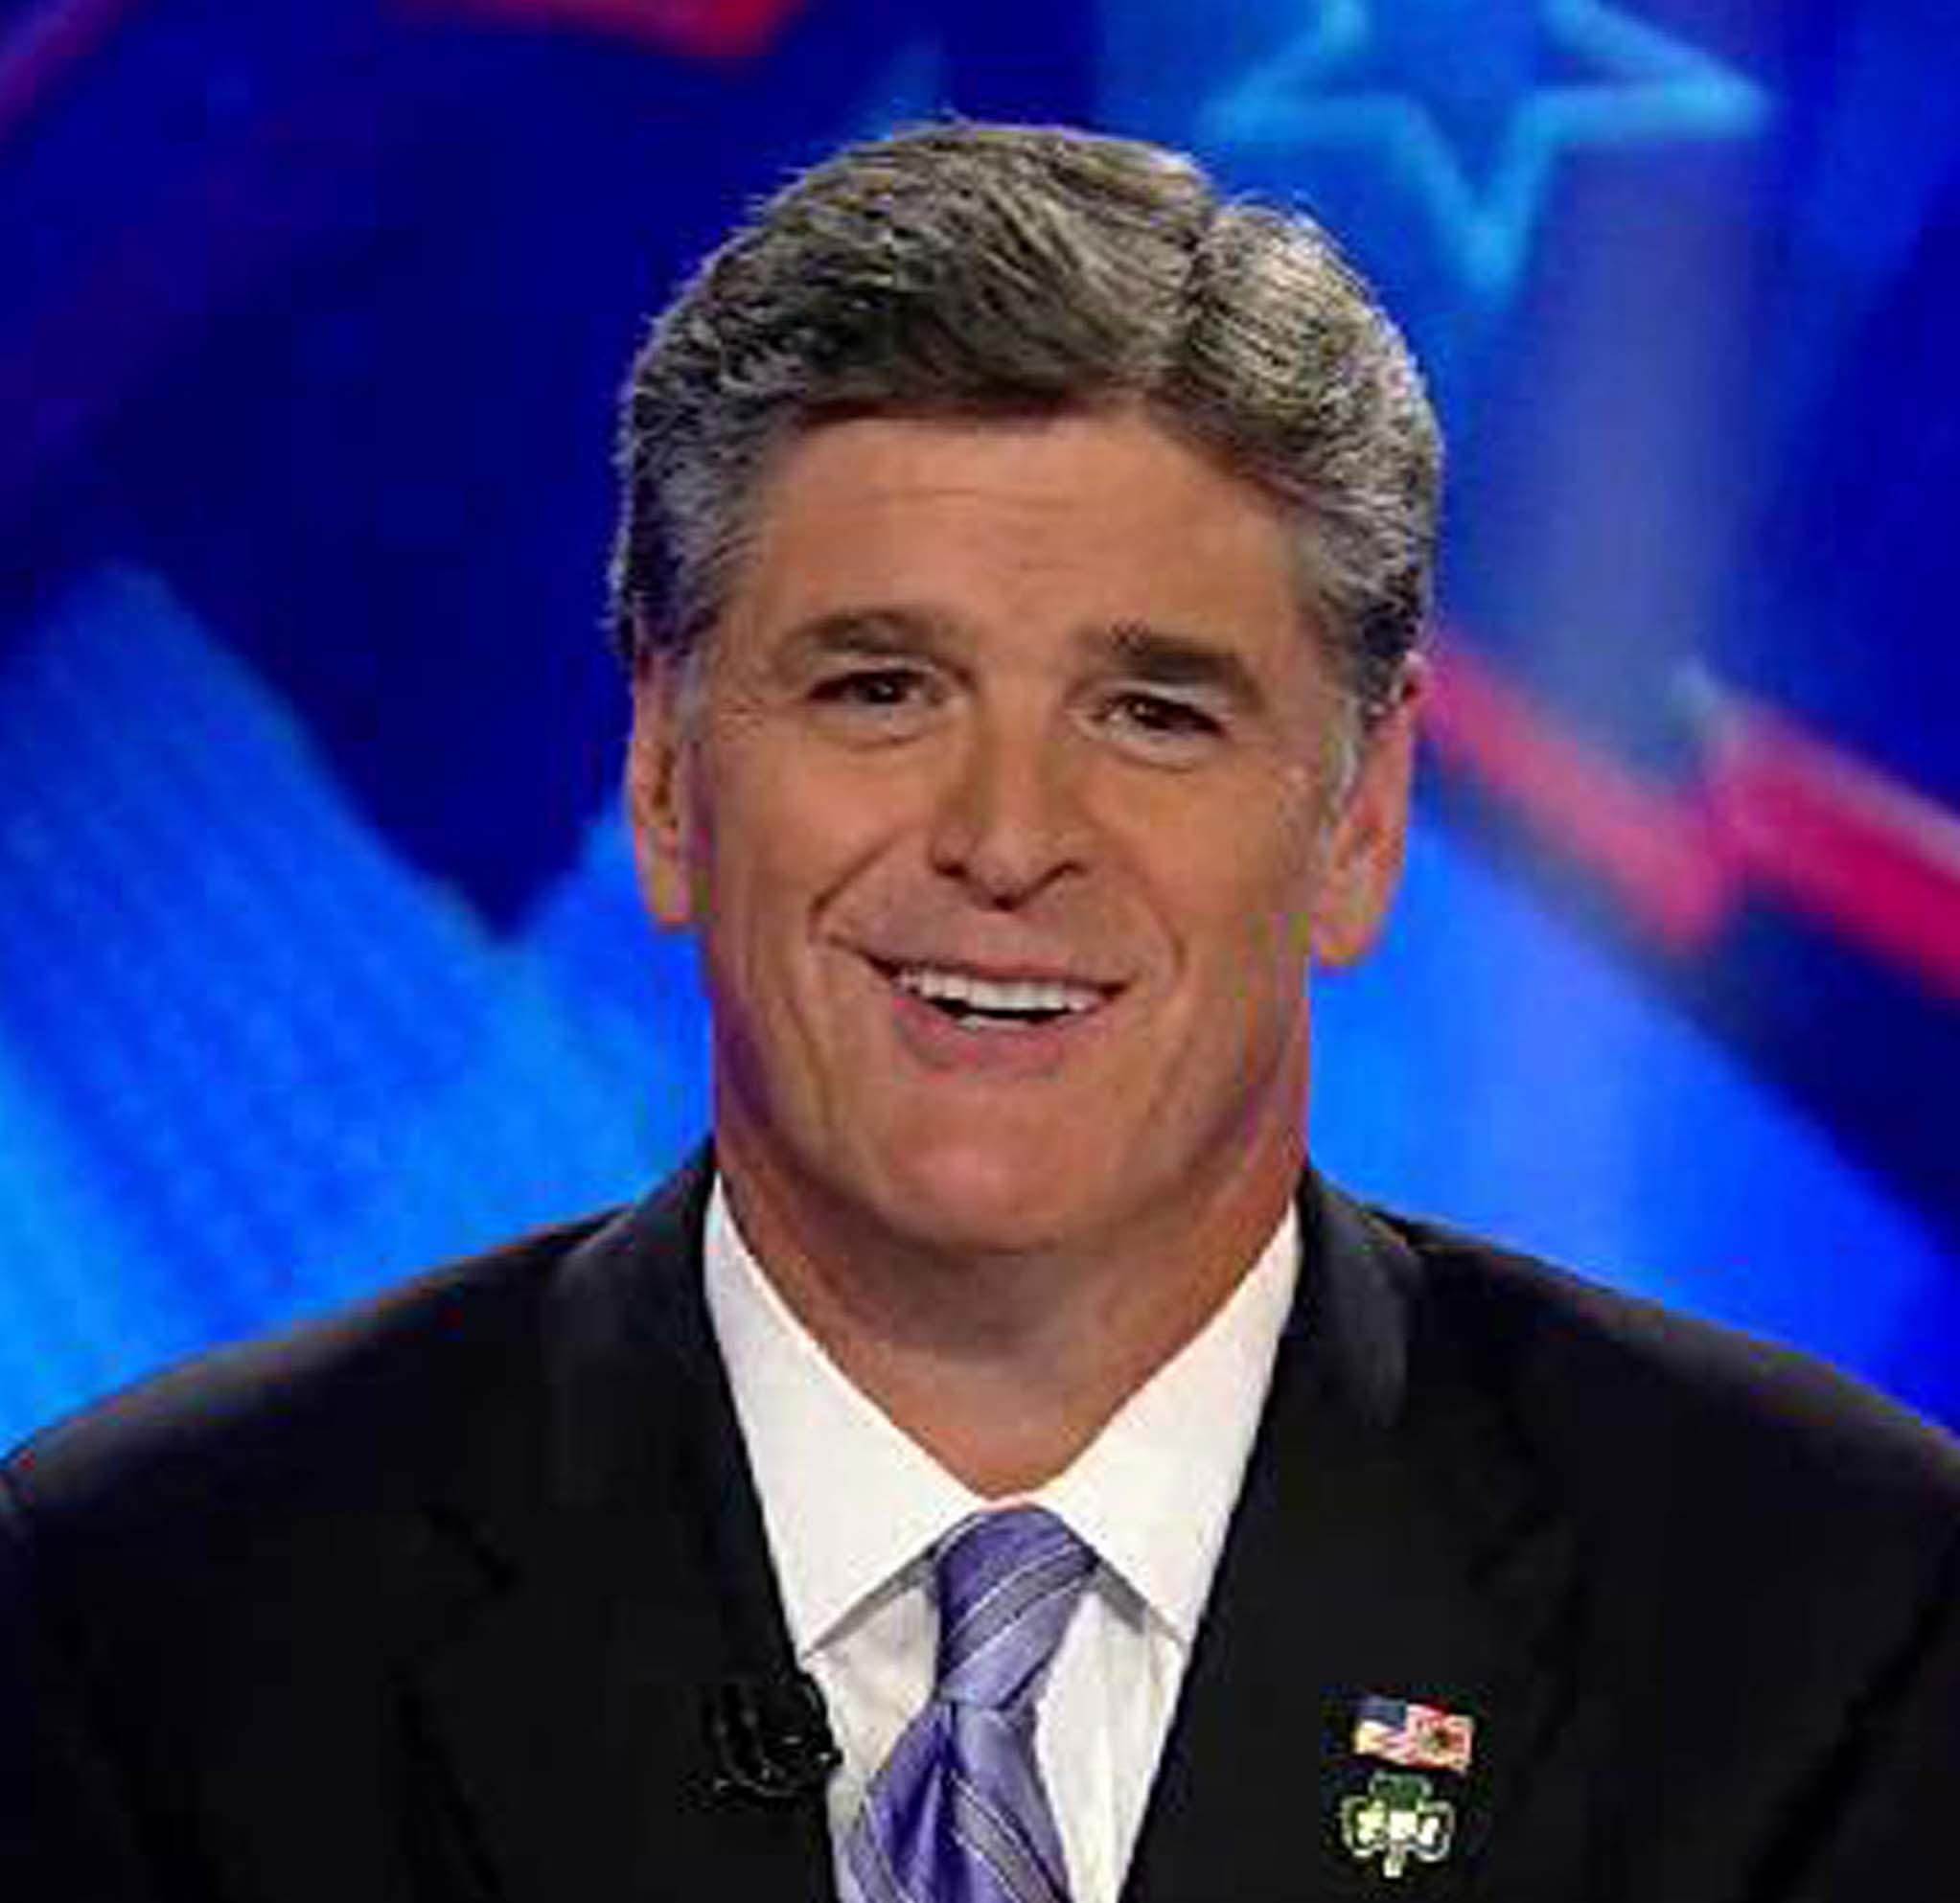 Obamacare Navigator Terminated After Discussion Wsean Hannity Hannity ...